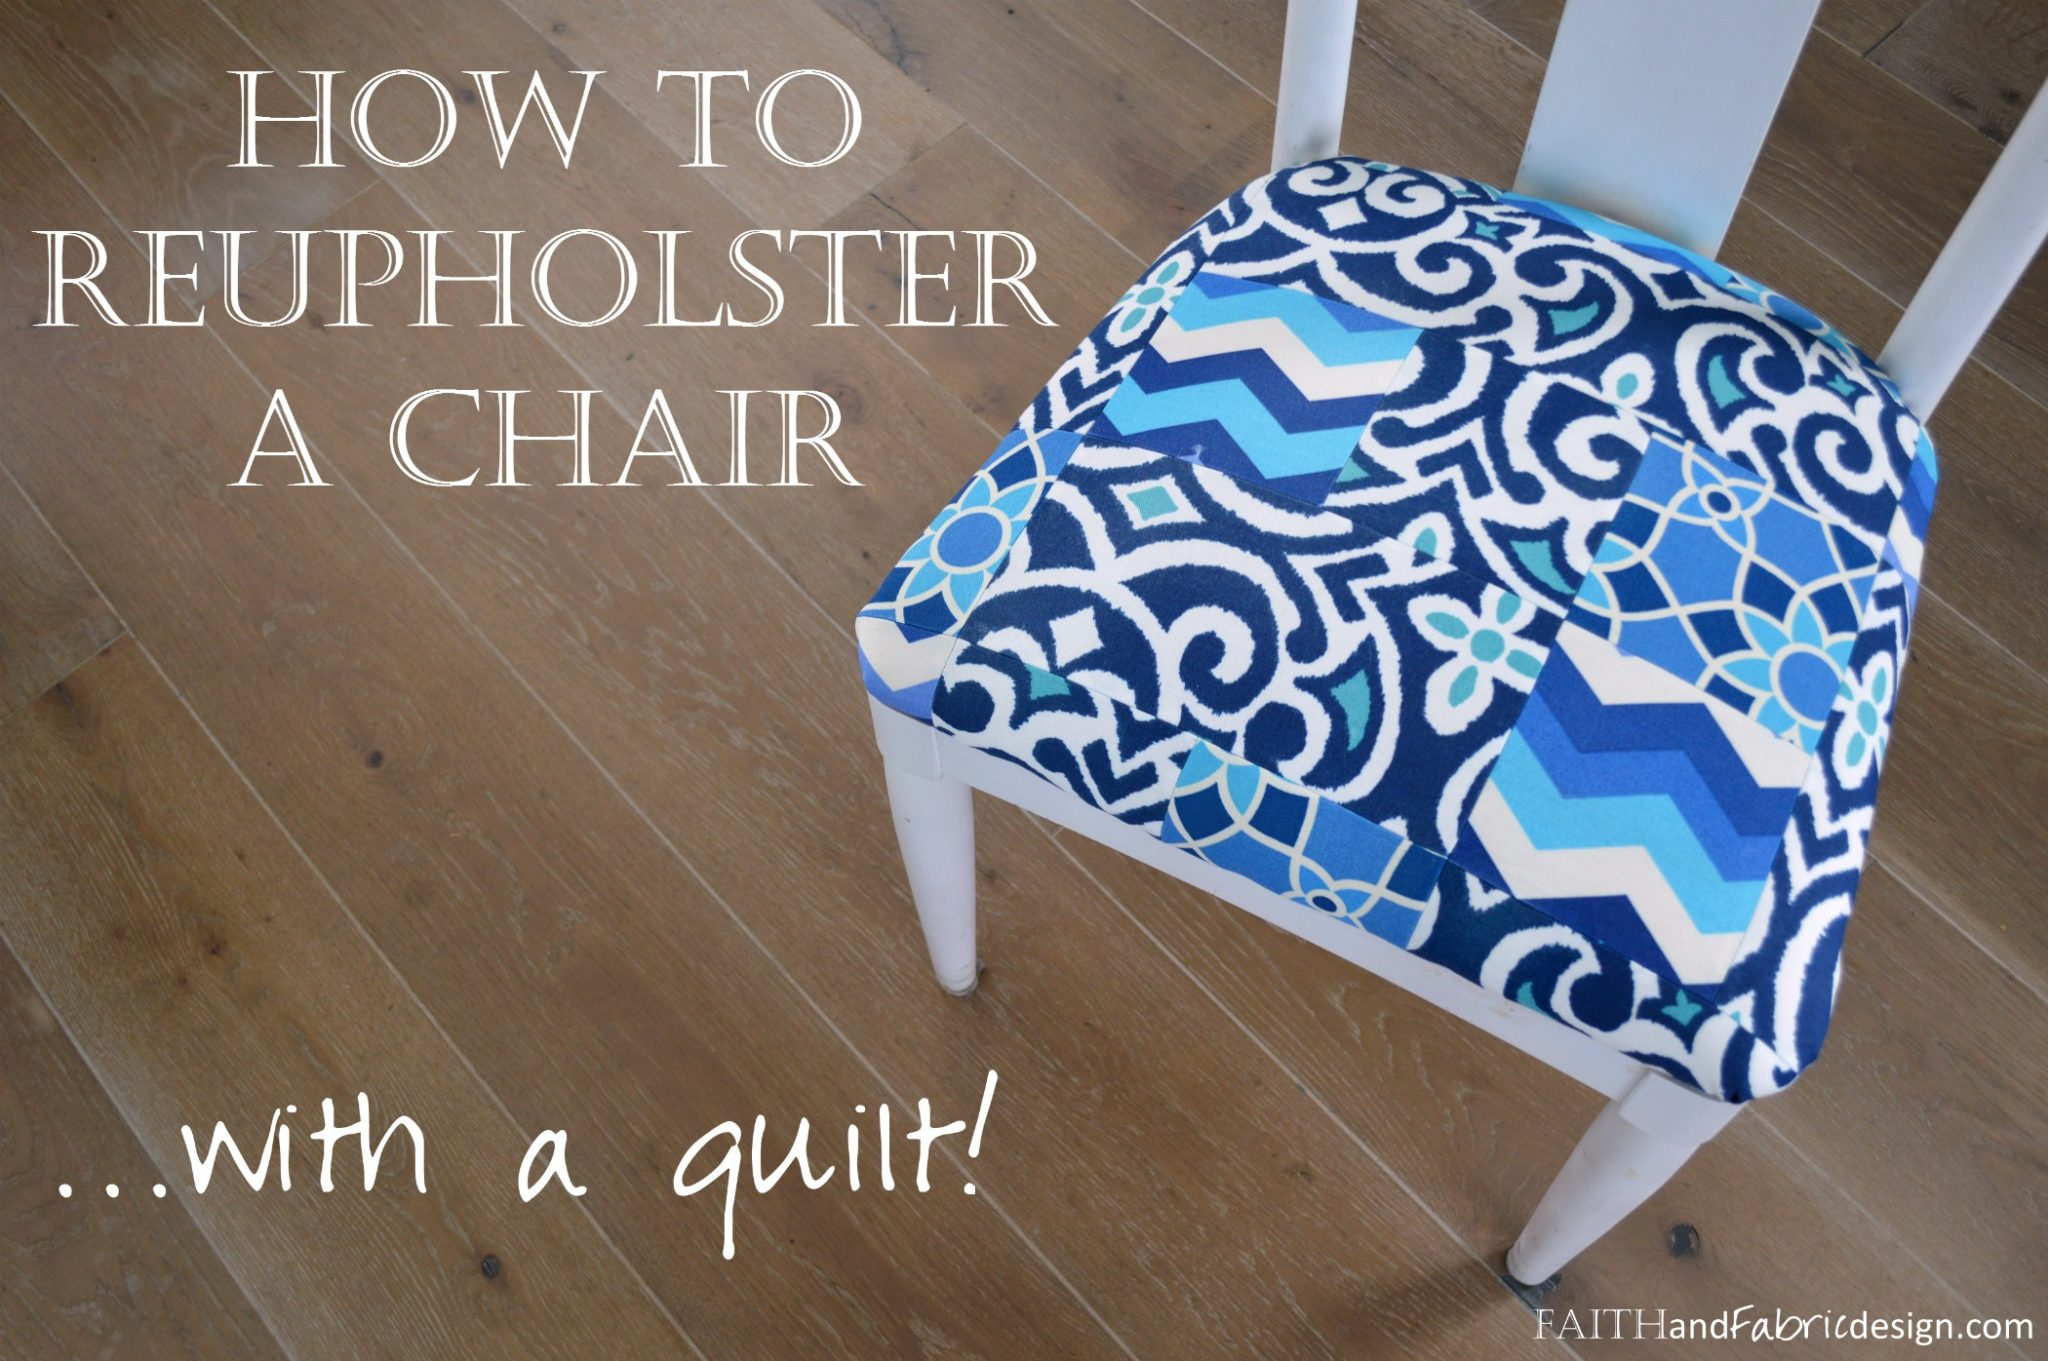 Faith And Fabric   How To Reupholster A Chair With A Quilt 1